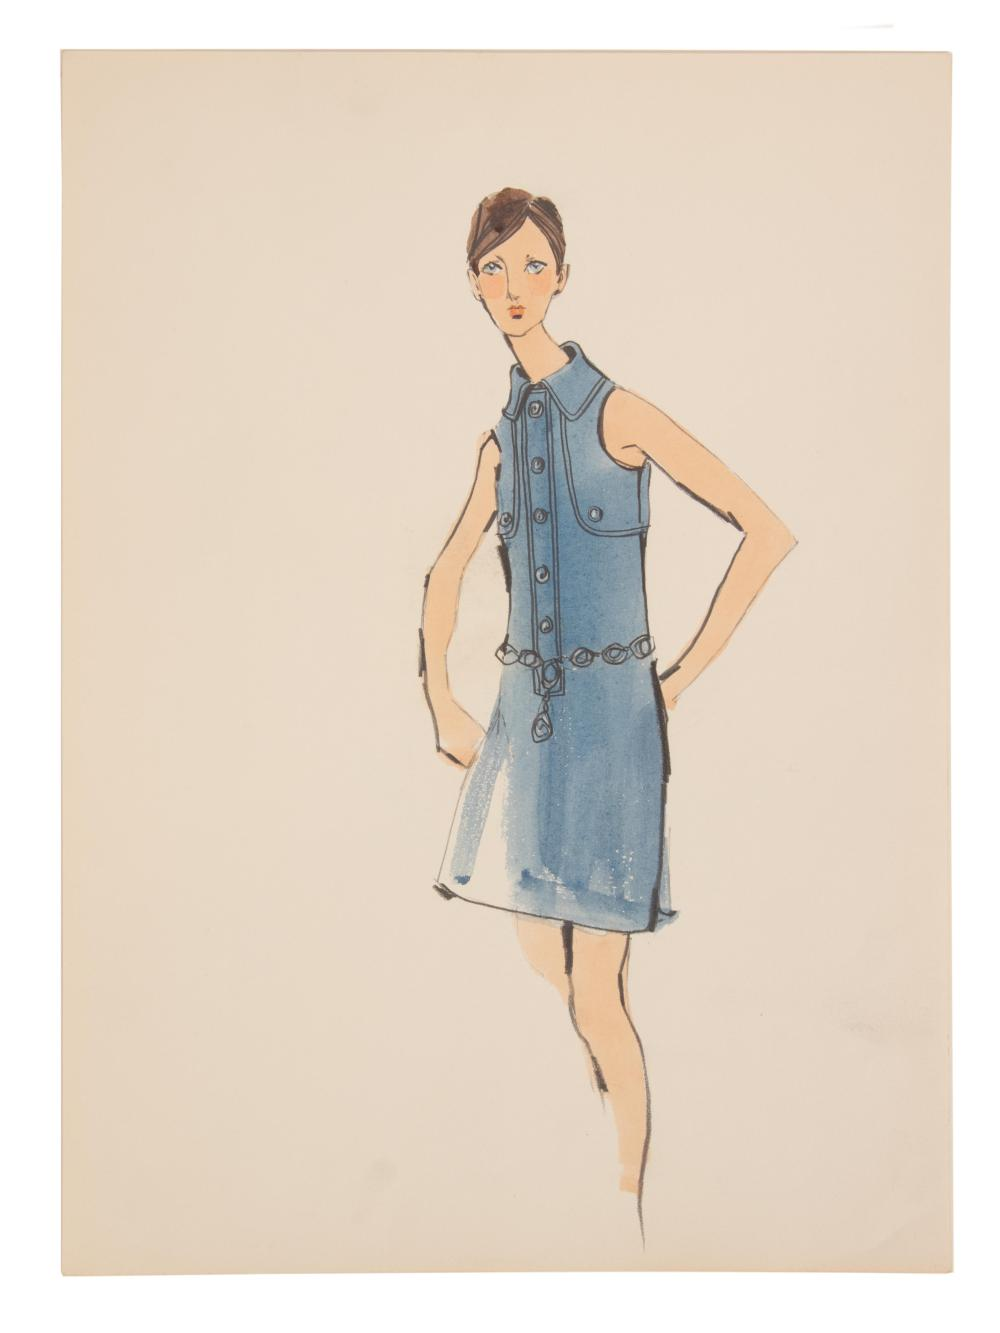 Property From The Geoffrey Beene Archive: Clothes That Care©